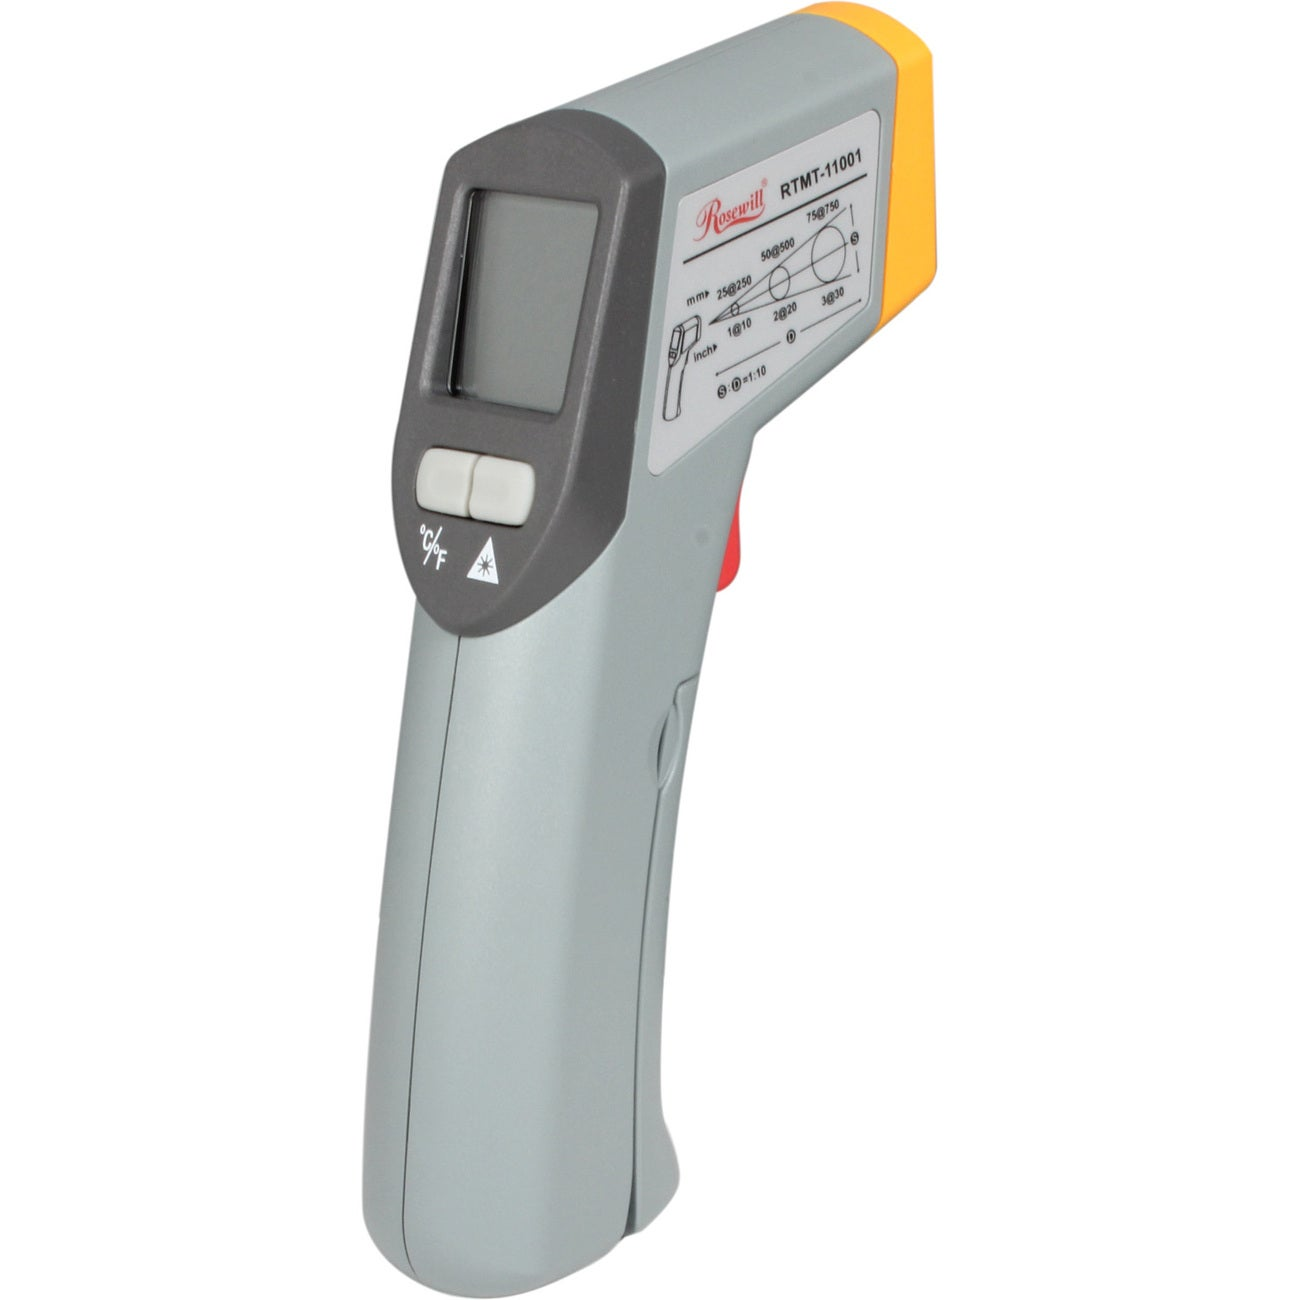 Rosewill Digital Thermometer